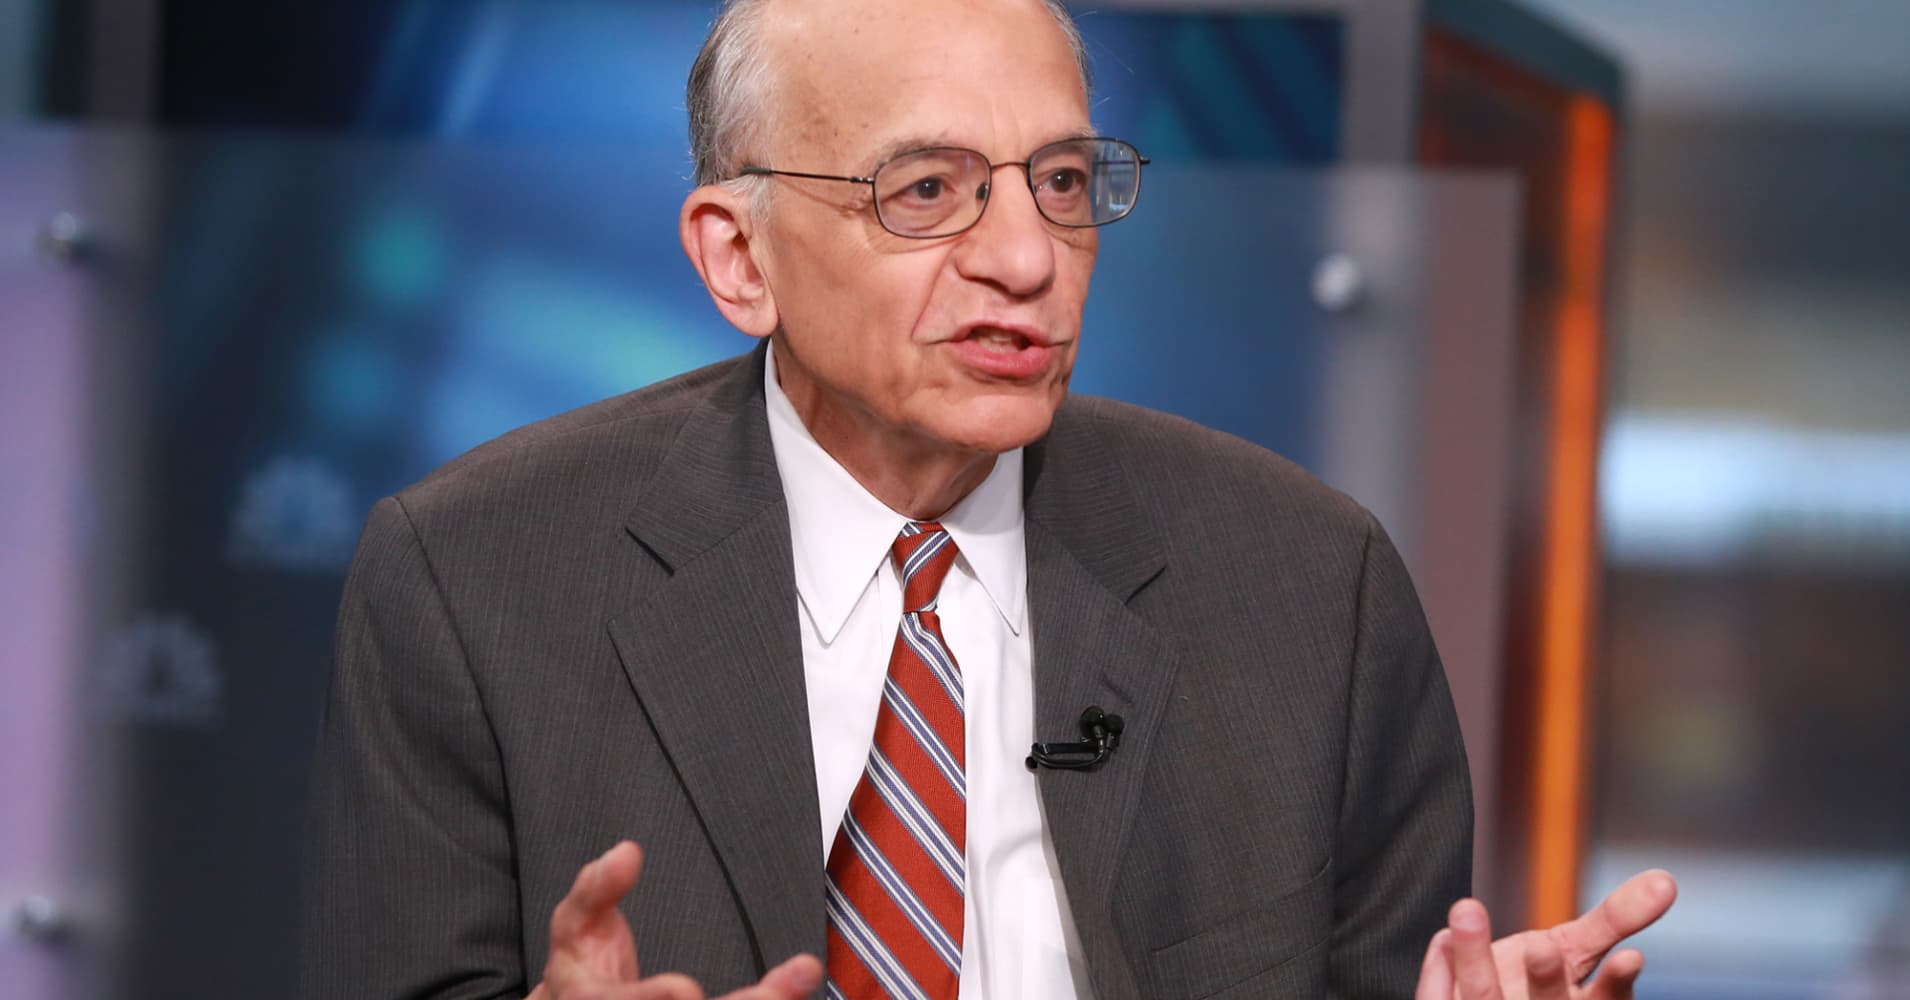 Jeremy Siegel's bullish call: This is a 'goldilocks situation' for stocks